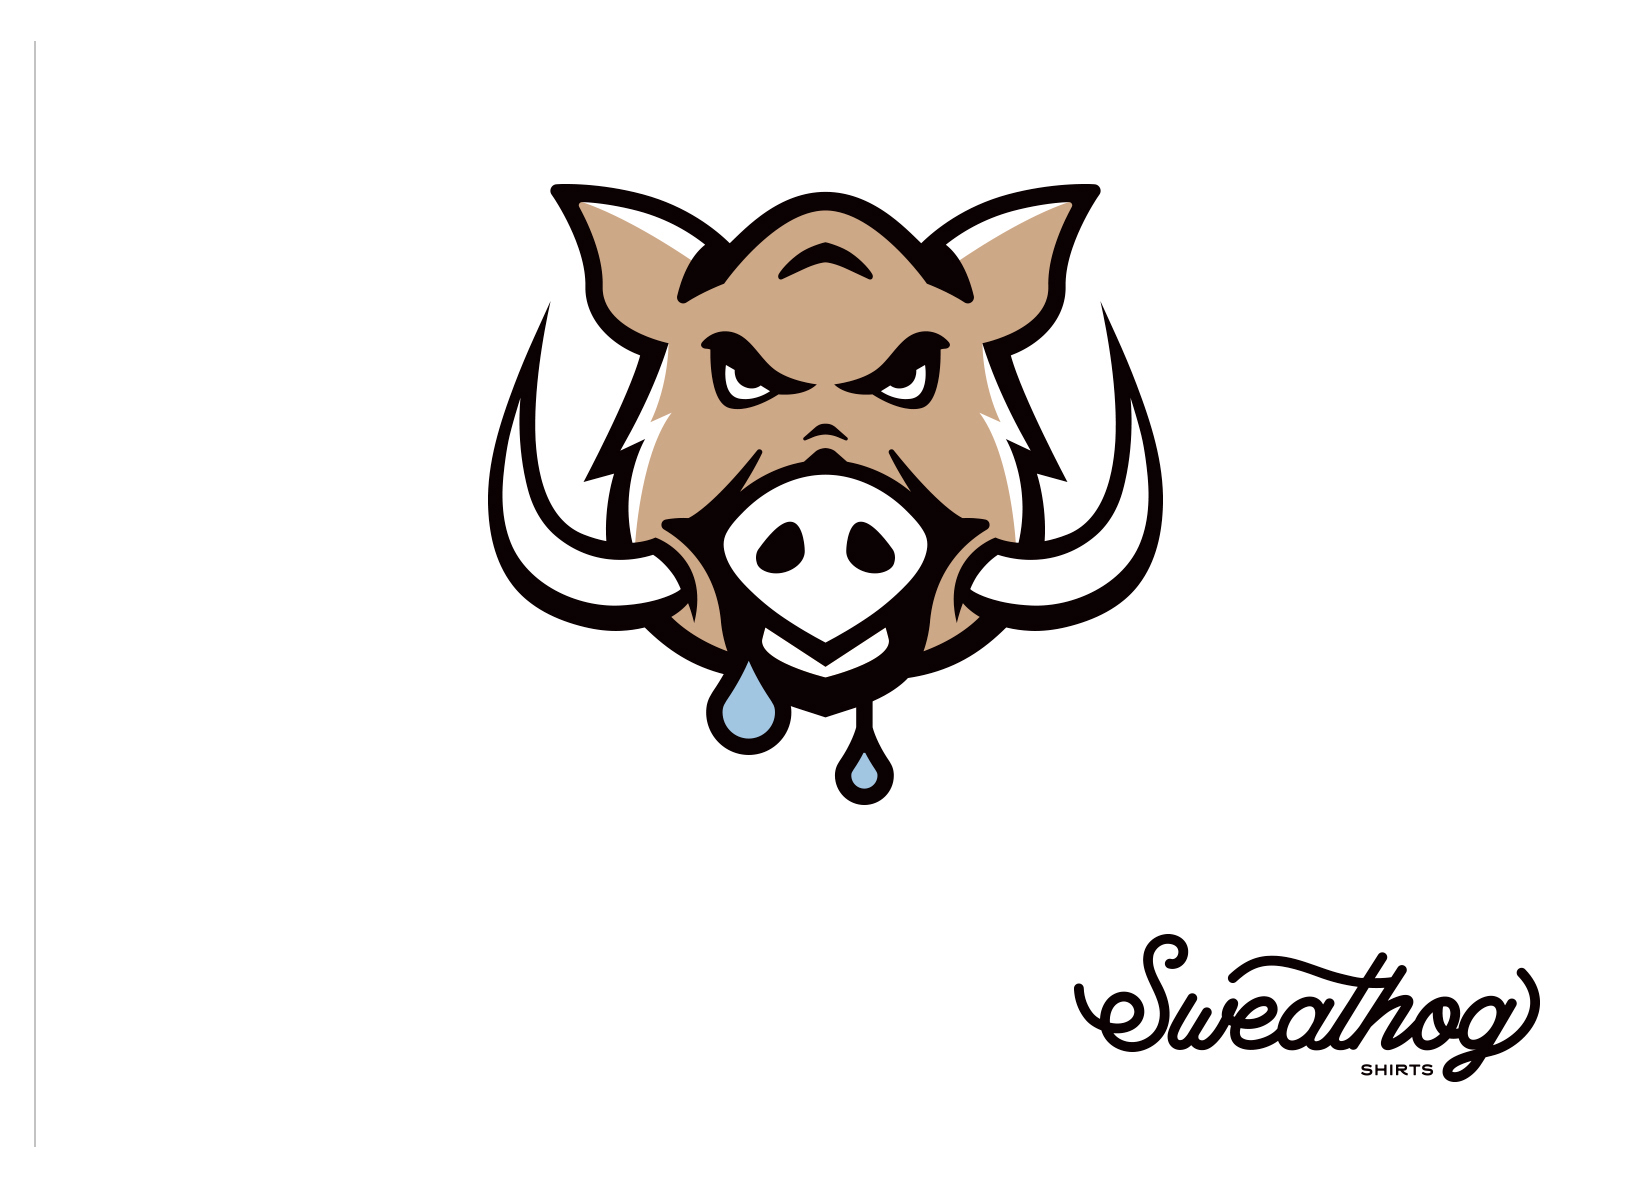 sports-mascot-sweathog-vector-mascot-by-jordan-fretz-design-2.jpg